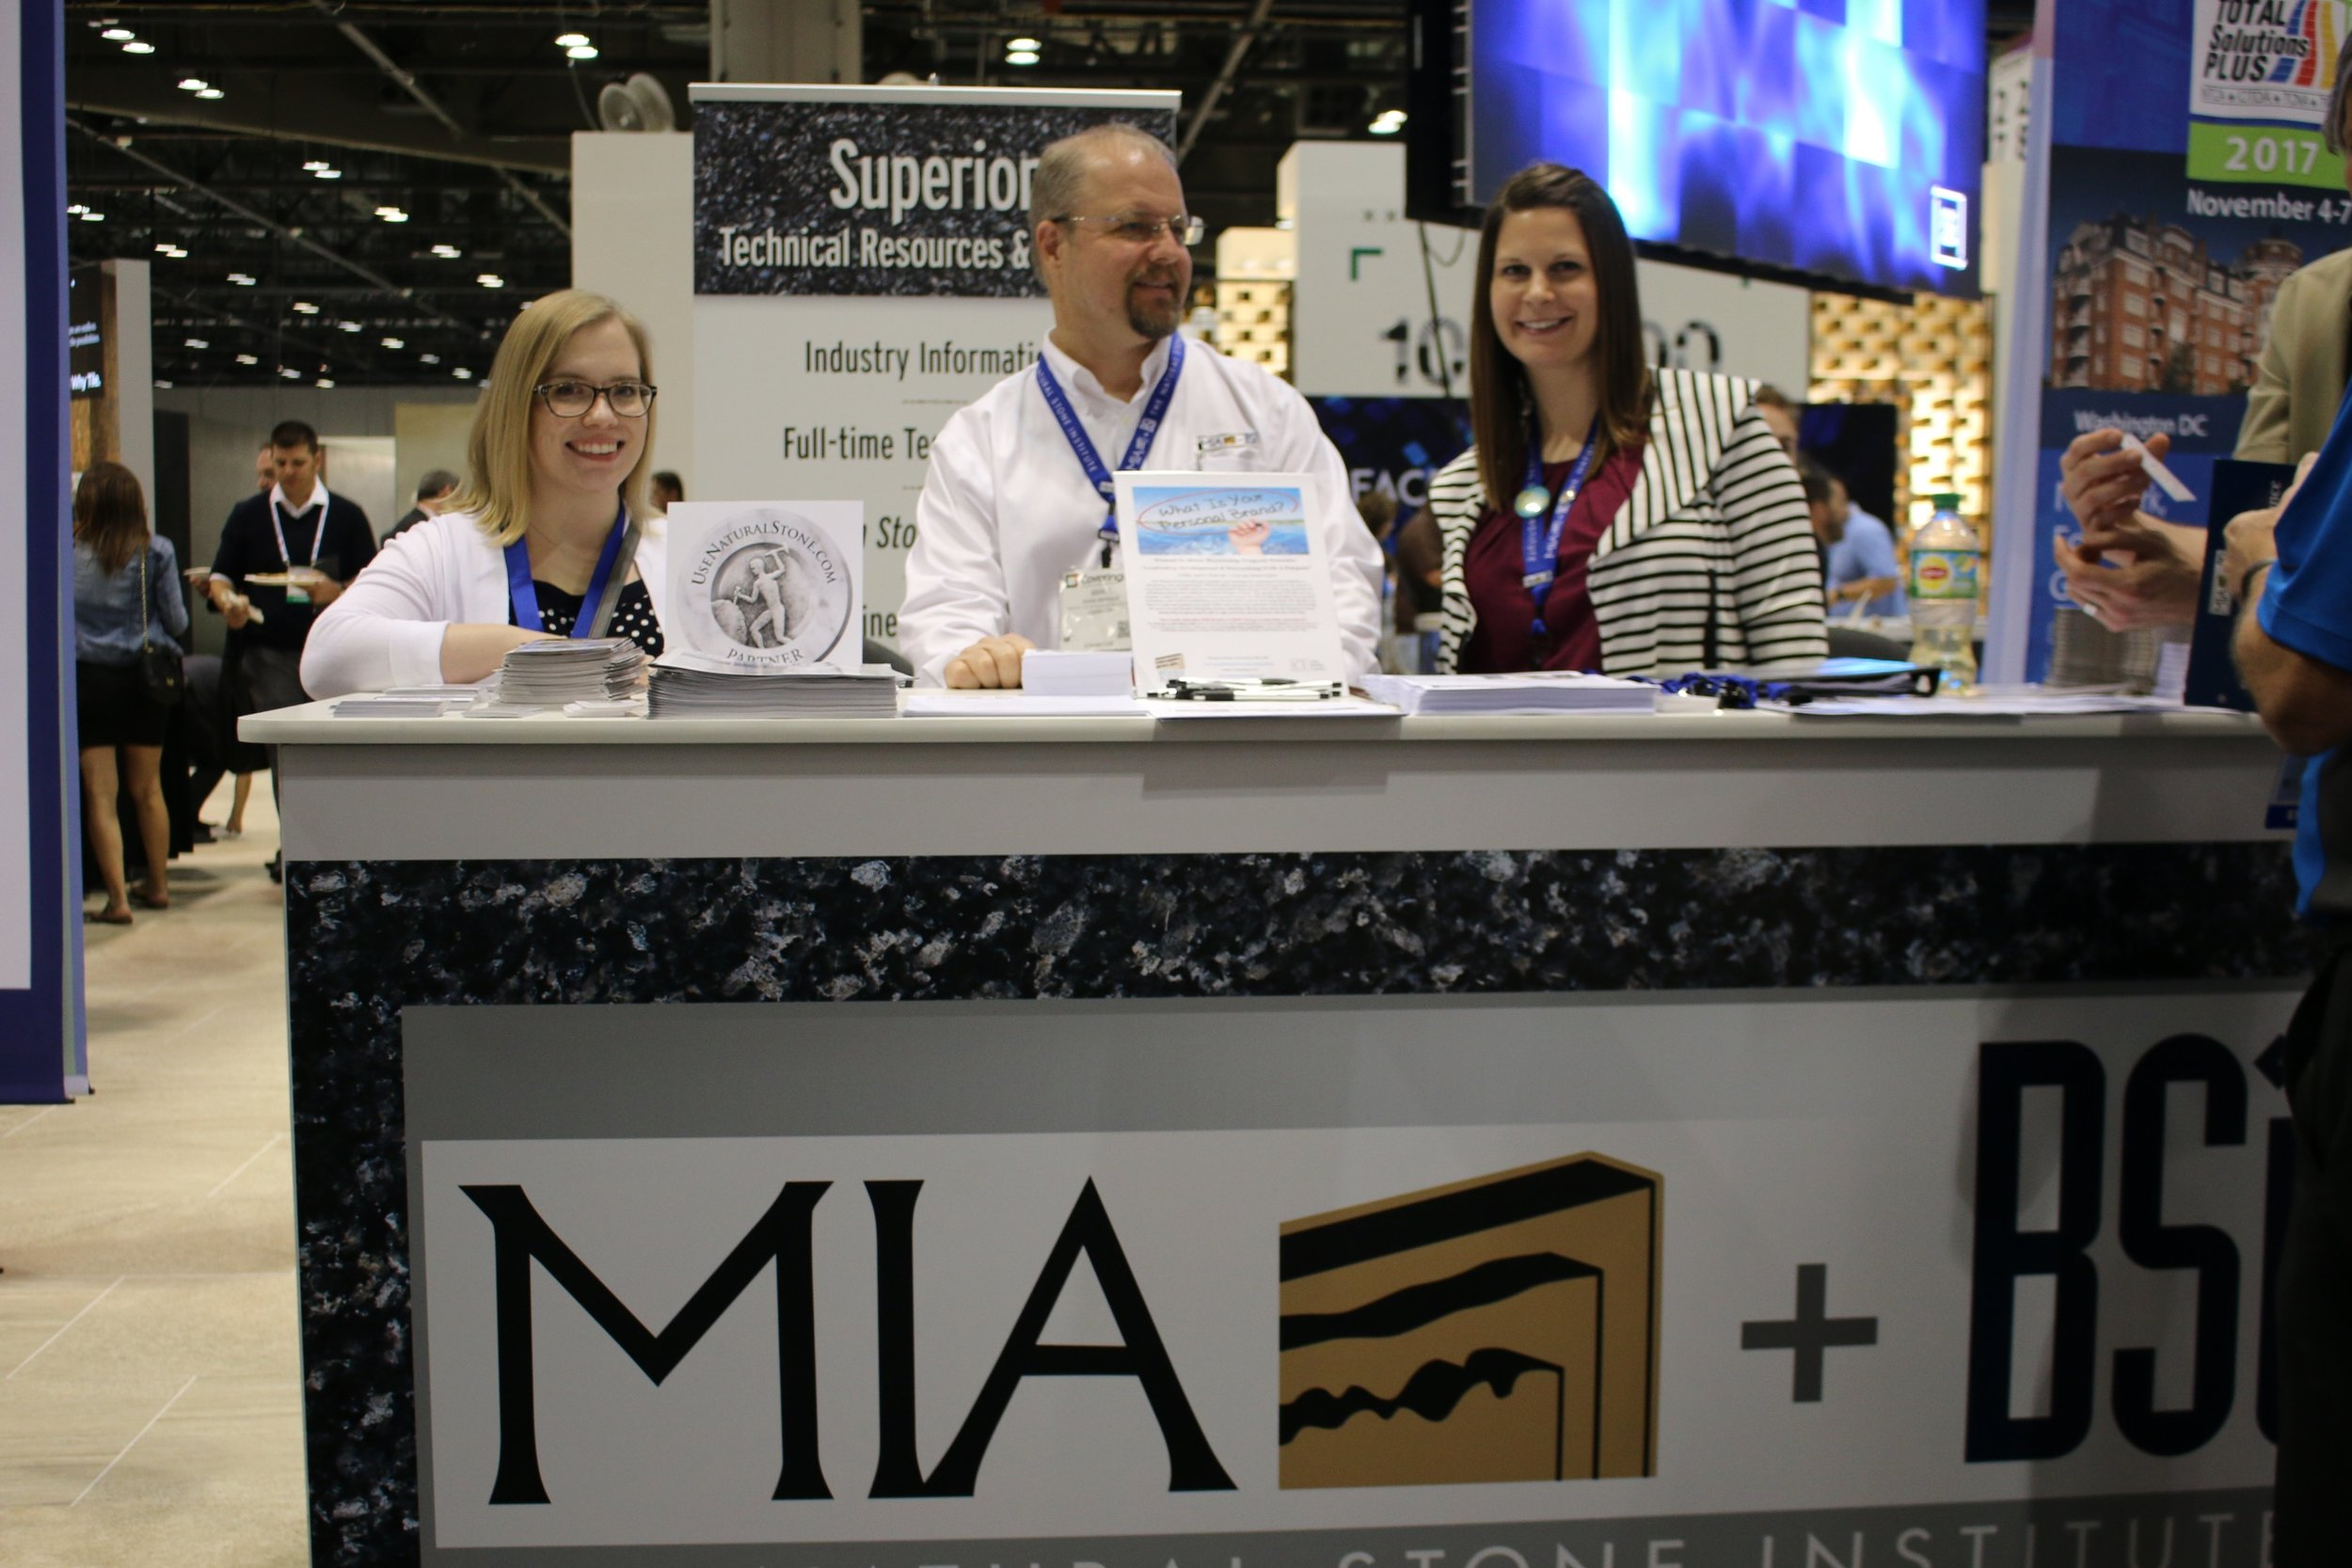 MIA+BSI: The Natural Stone Institute staff answers questions and shares resources at Coverings Photo: Lisa Stewart Photography